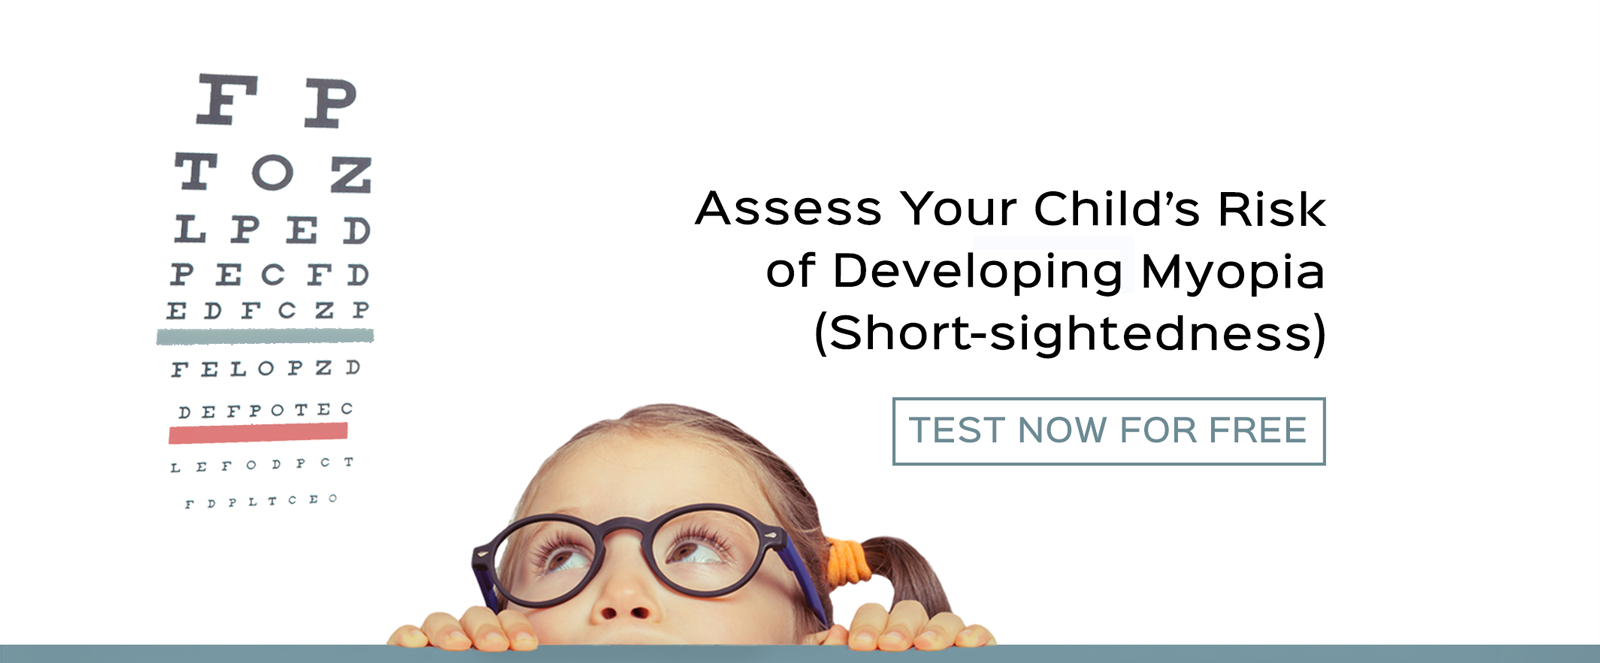 asses your child's risk of developing myopia